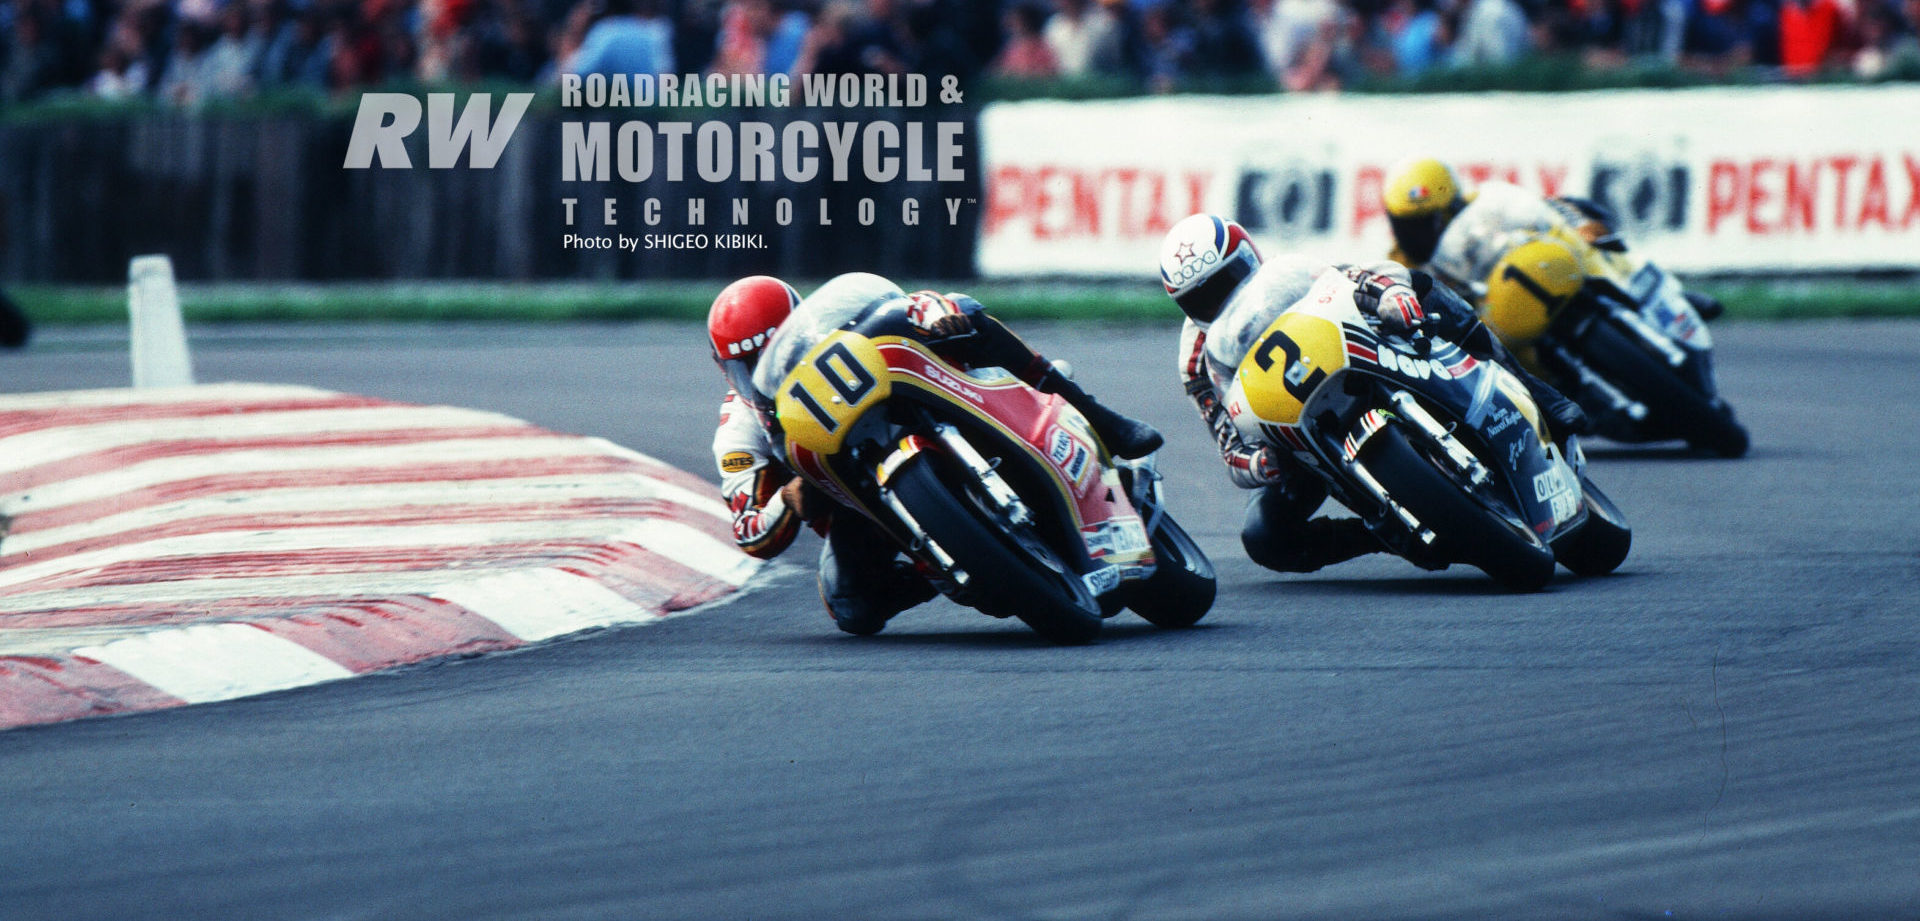 Randy Mamola (10) leads Suzuki's Marco Lucchinelli (2) and Yamaha's Kenny Roberts (1) at Silverstone, England, in 1980, where Mamola won, beating Roberts by 11 seconds with Lucchinelli a distant third. Photo by Shigeo Kibiki, copyright Roadracing World Publishing, Inc.